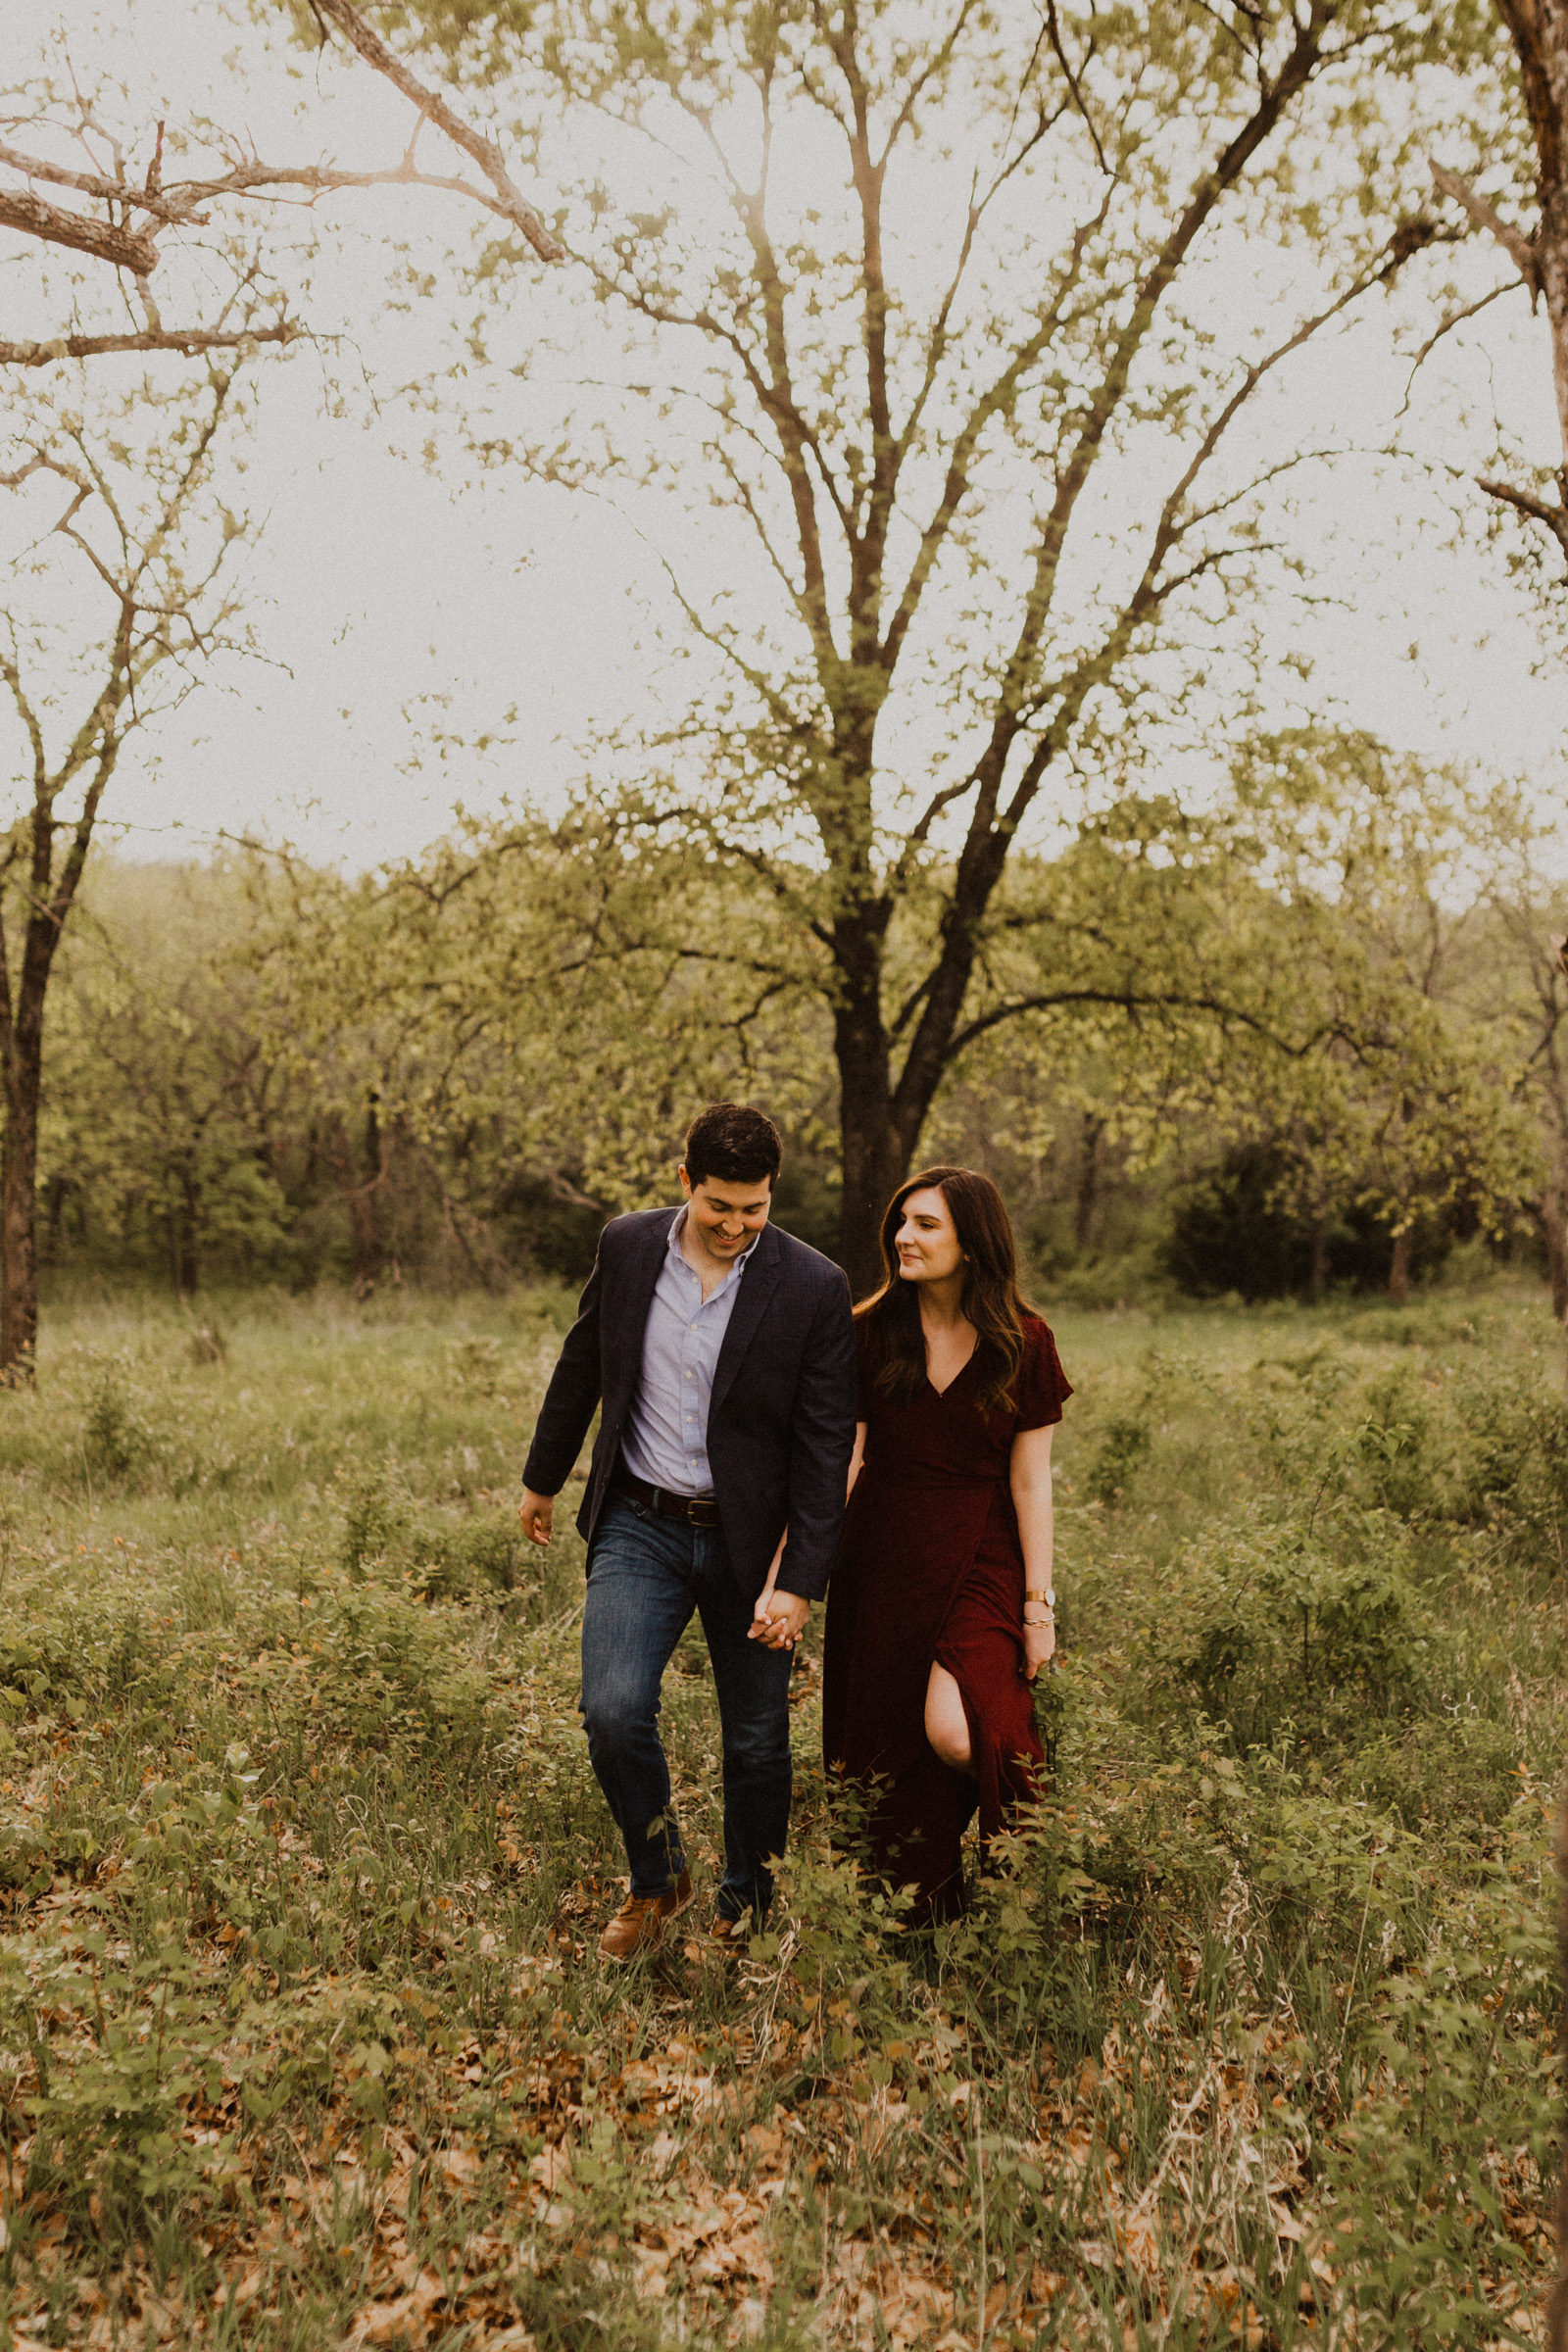 alyssa barletter photography shawnee mission park engagement session photographer spring fields-7.jpg